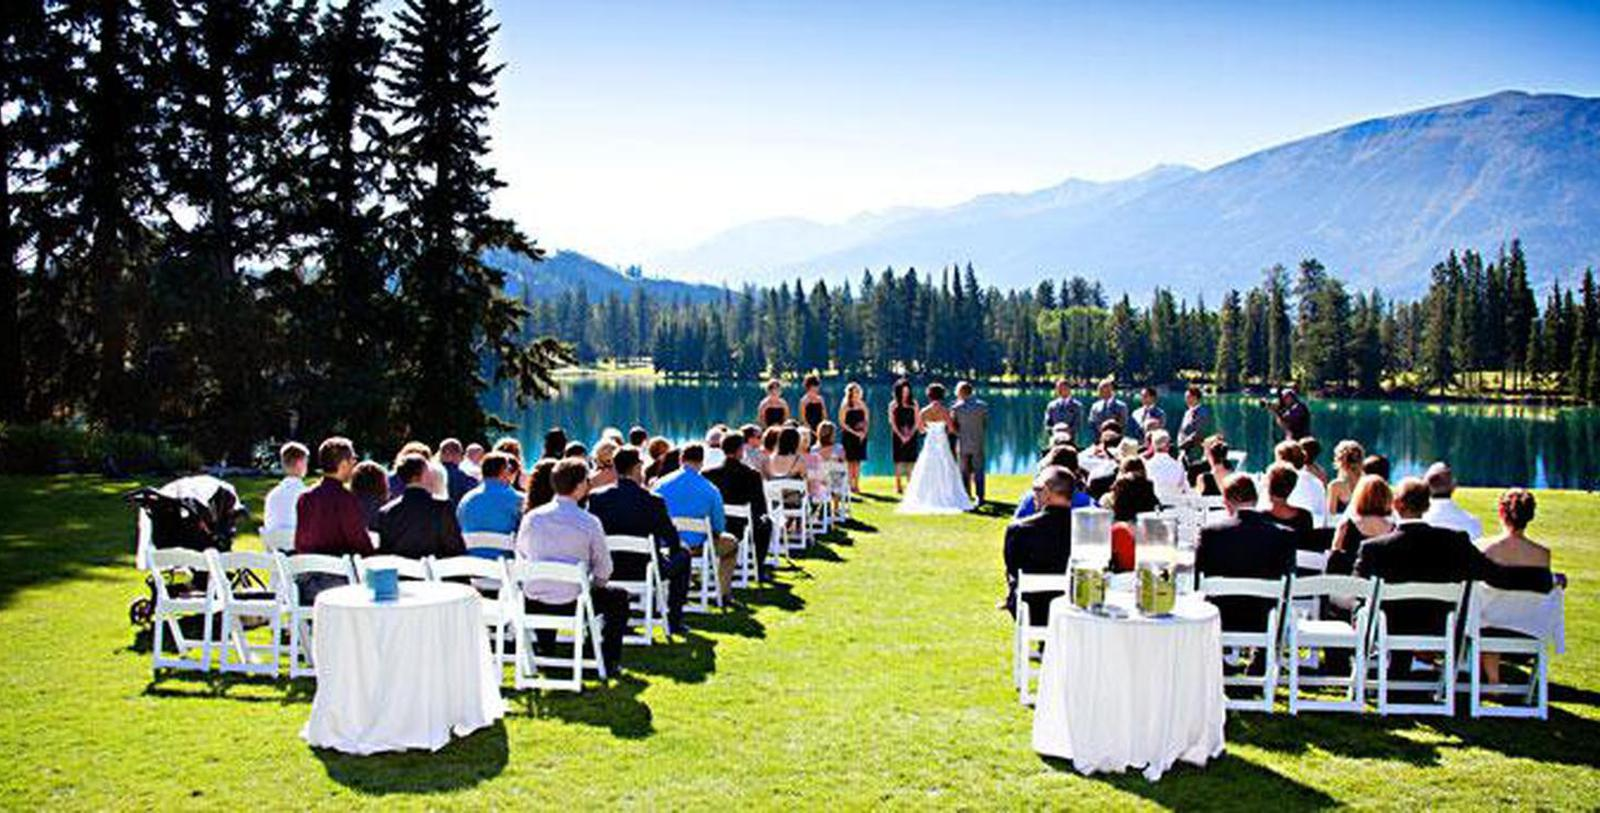 Image of outdoor wedding on the grounds at Fairmont Jasper Park Lodge, 1922, Member of Historic Hotels Worldwide, in Jasper, Alberta, Canada, Experience